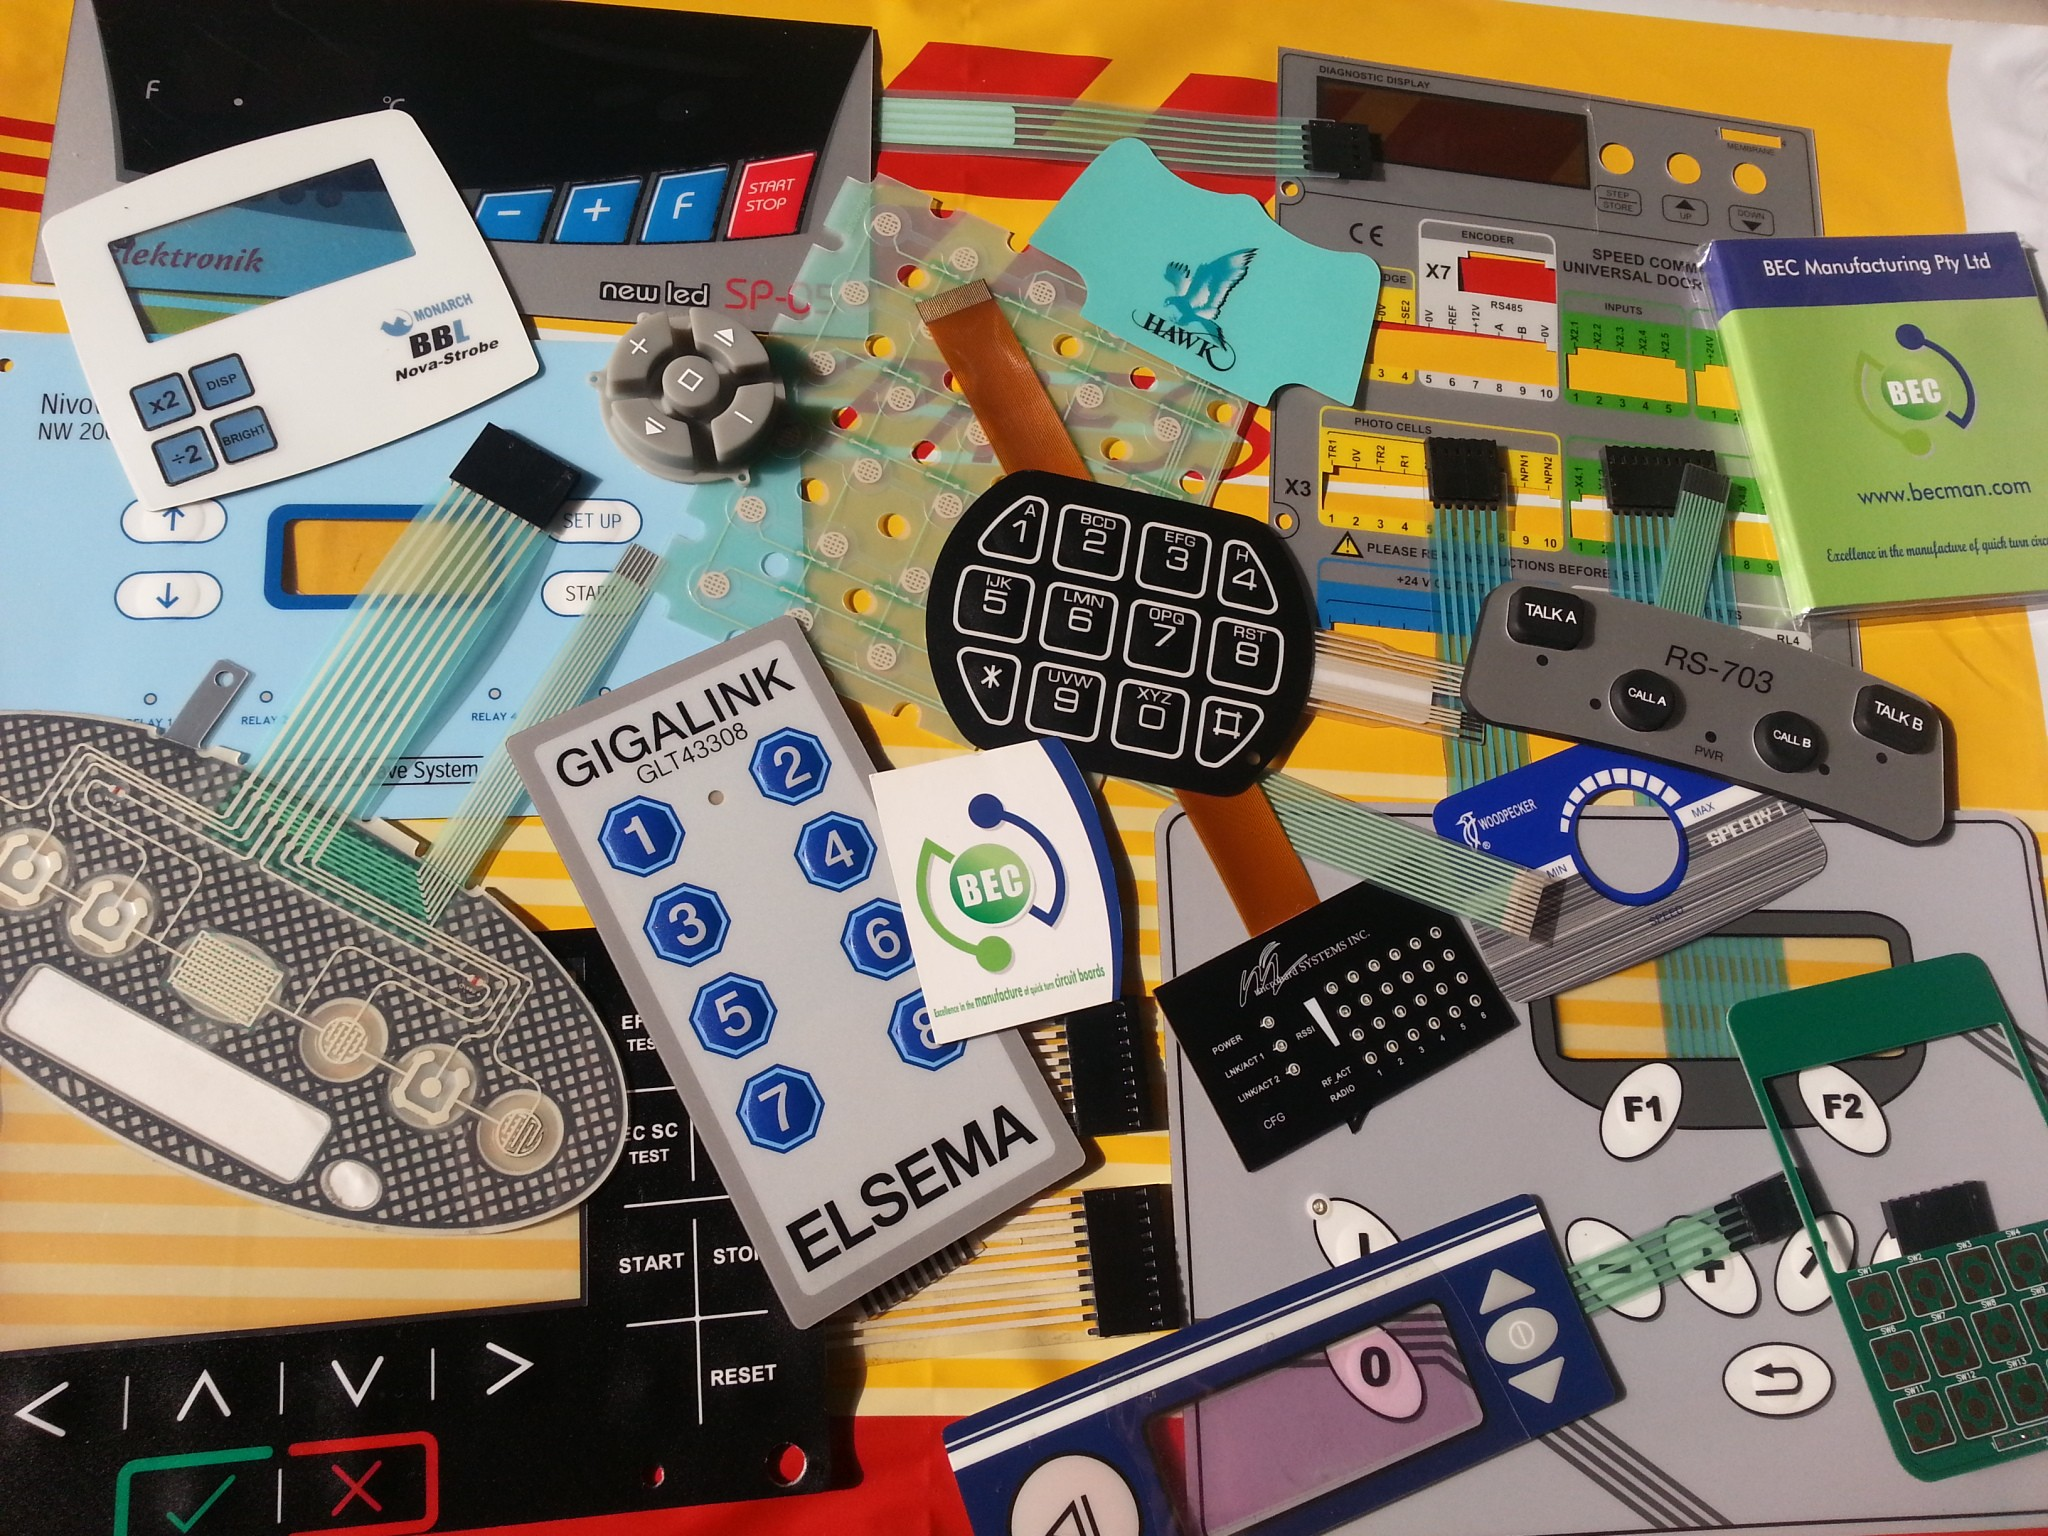 Bec Manufacturing Printed Circuit Board Company Circuitboardfabricationcompany Offers Prototype Quantities Of Custom Made Membrane Switches Various Builds To Help You Make Your Projects Have A Professional Look Now